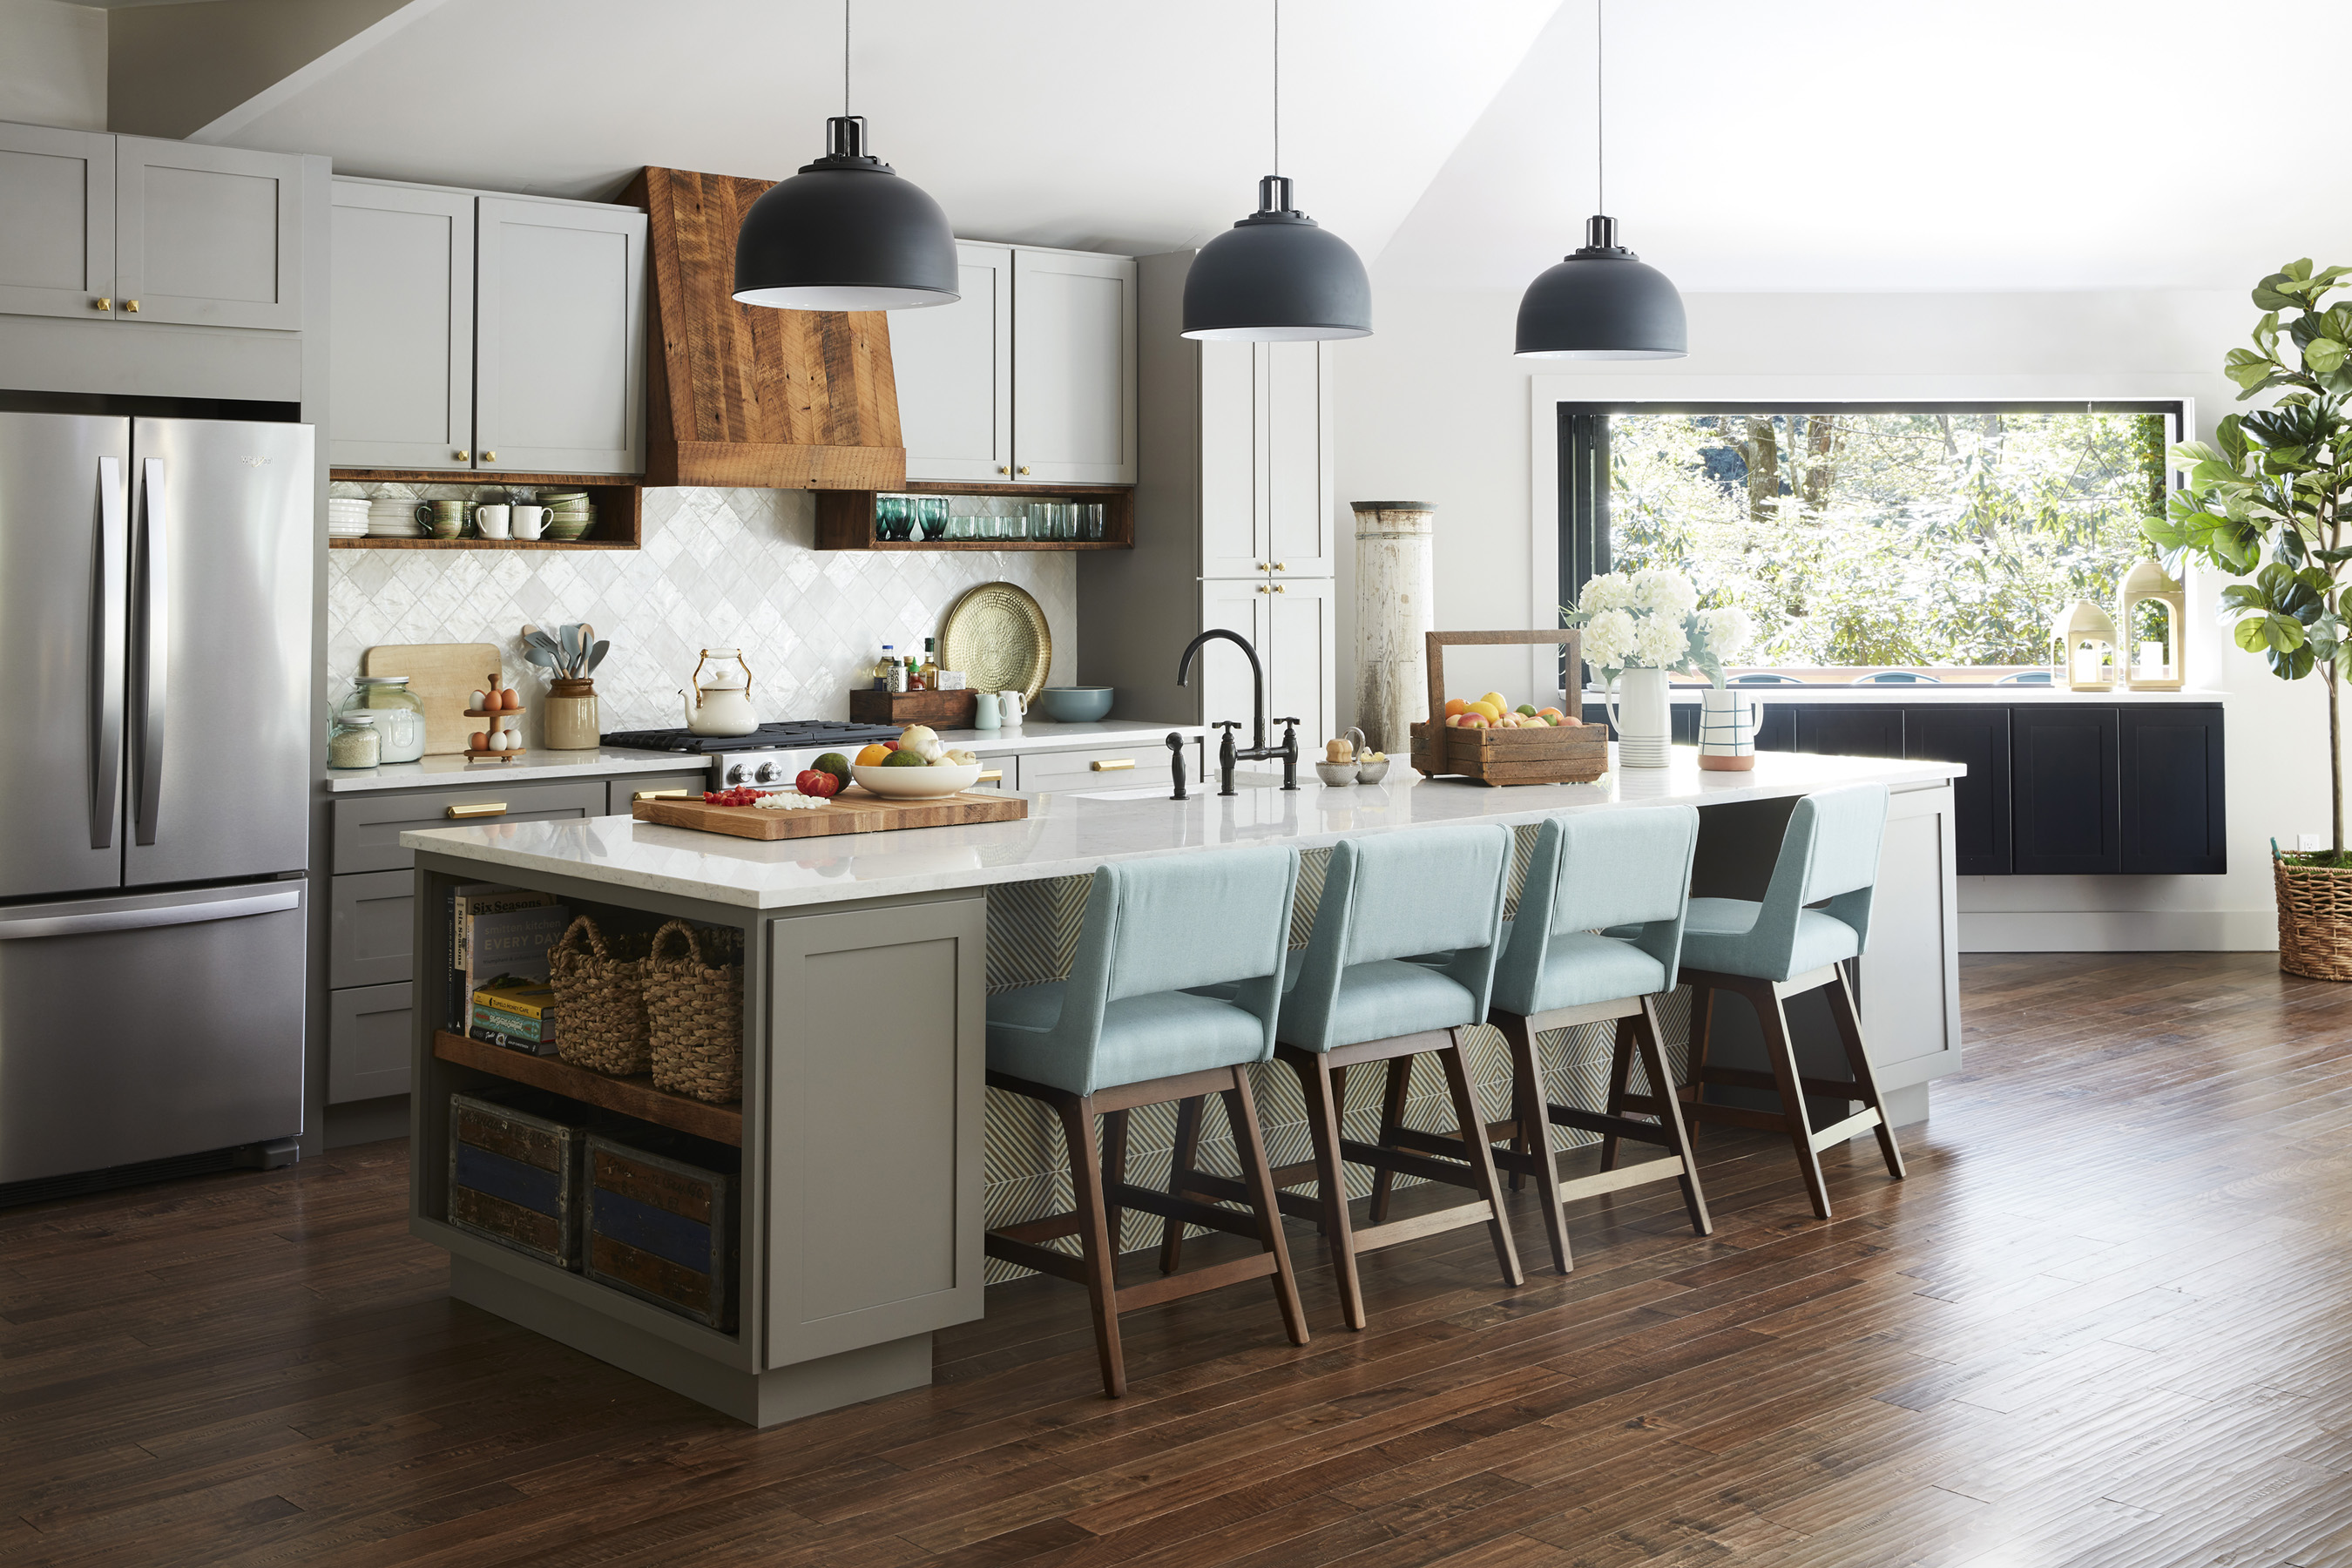 Rustic details and refined modern style combine to give DIY Network Ultimate Retreat 2018 a spacious kitchen that is functional and good-looking at the same time. A 12-foot island with seating for four serves as the focal point, and durable quartz countertops provide an easy-to-clean workspace that is bright and airy, augmented by three oversize lights and tall, vaulted ceilings above. Touches like a hood and dish boxes made of reclaimed wood add a handcrafted feel, while the floating buffet with a folding accordion window that passes through to the bar outside adds some truly unique functionality.